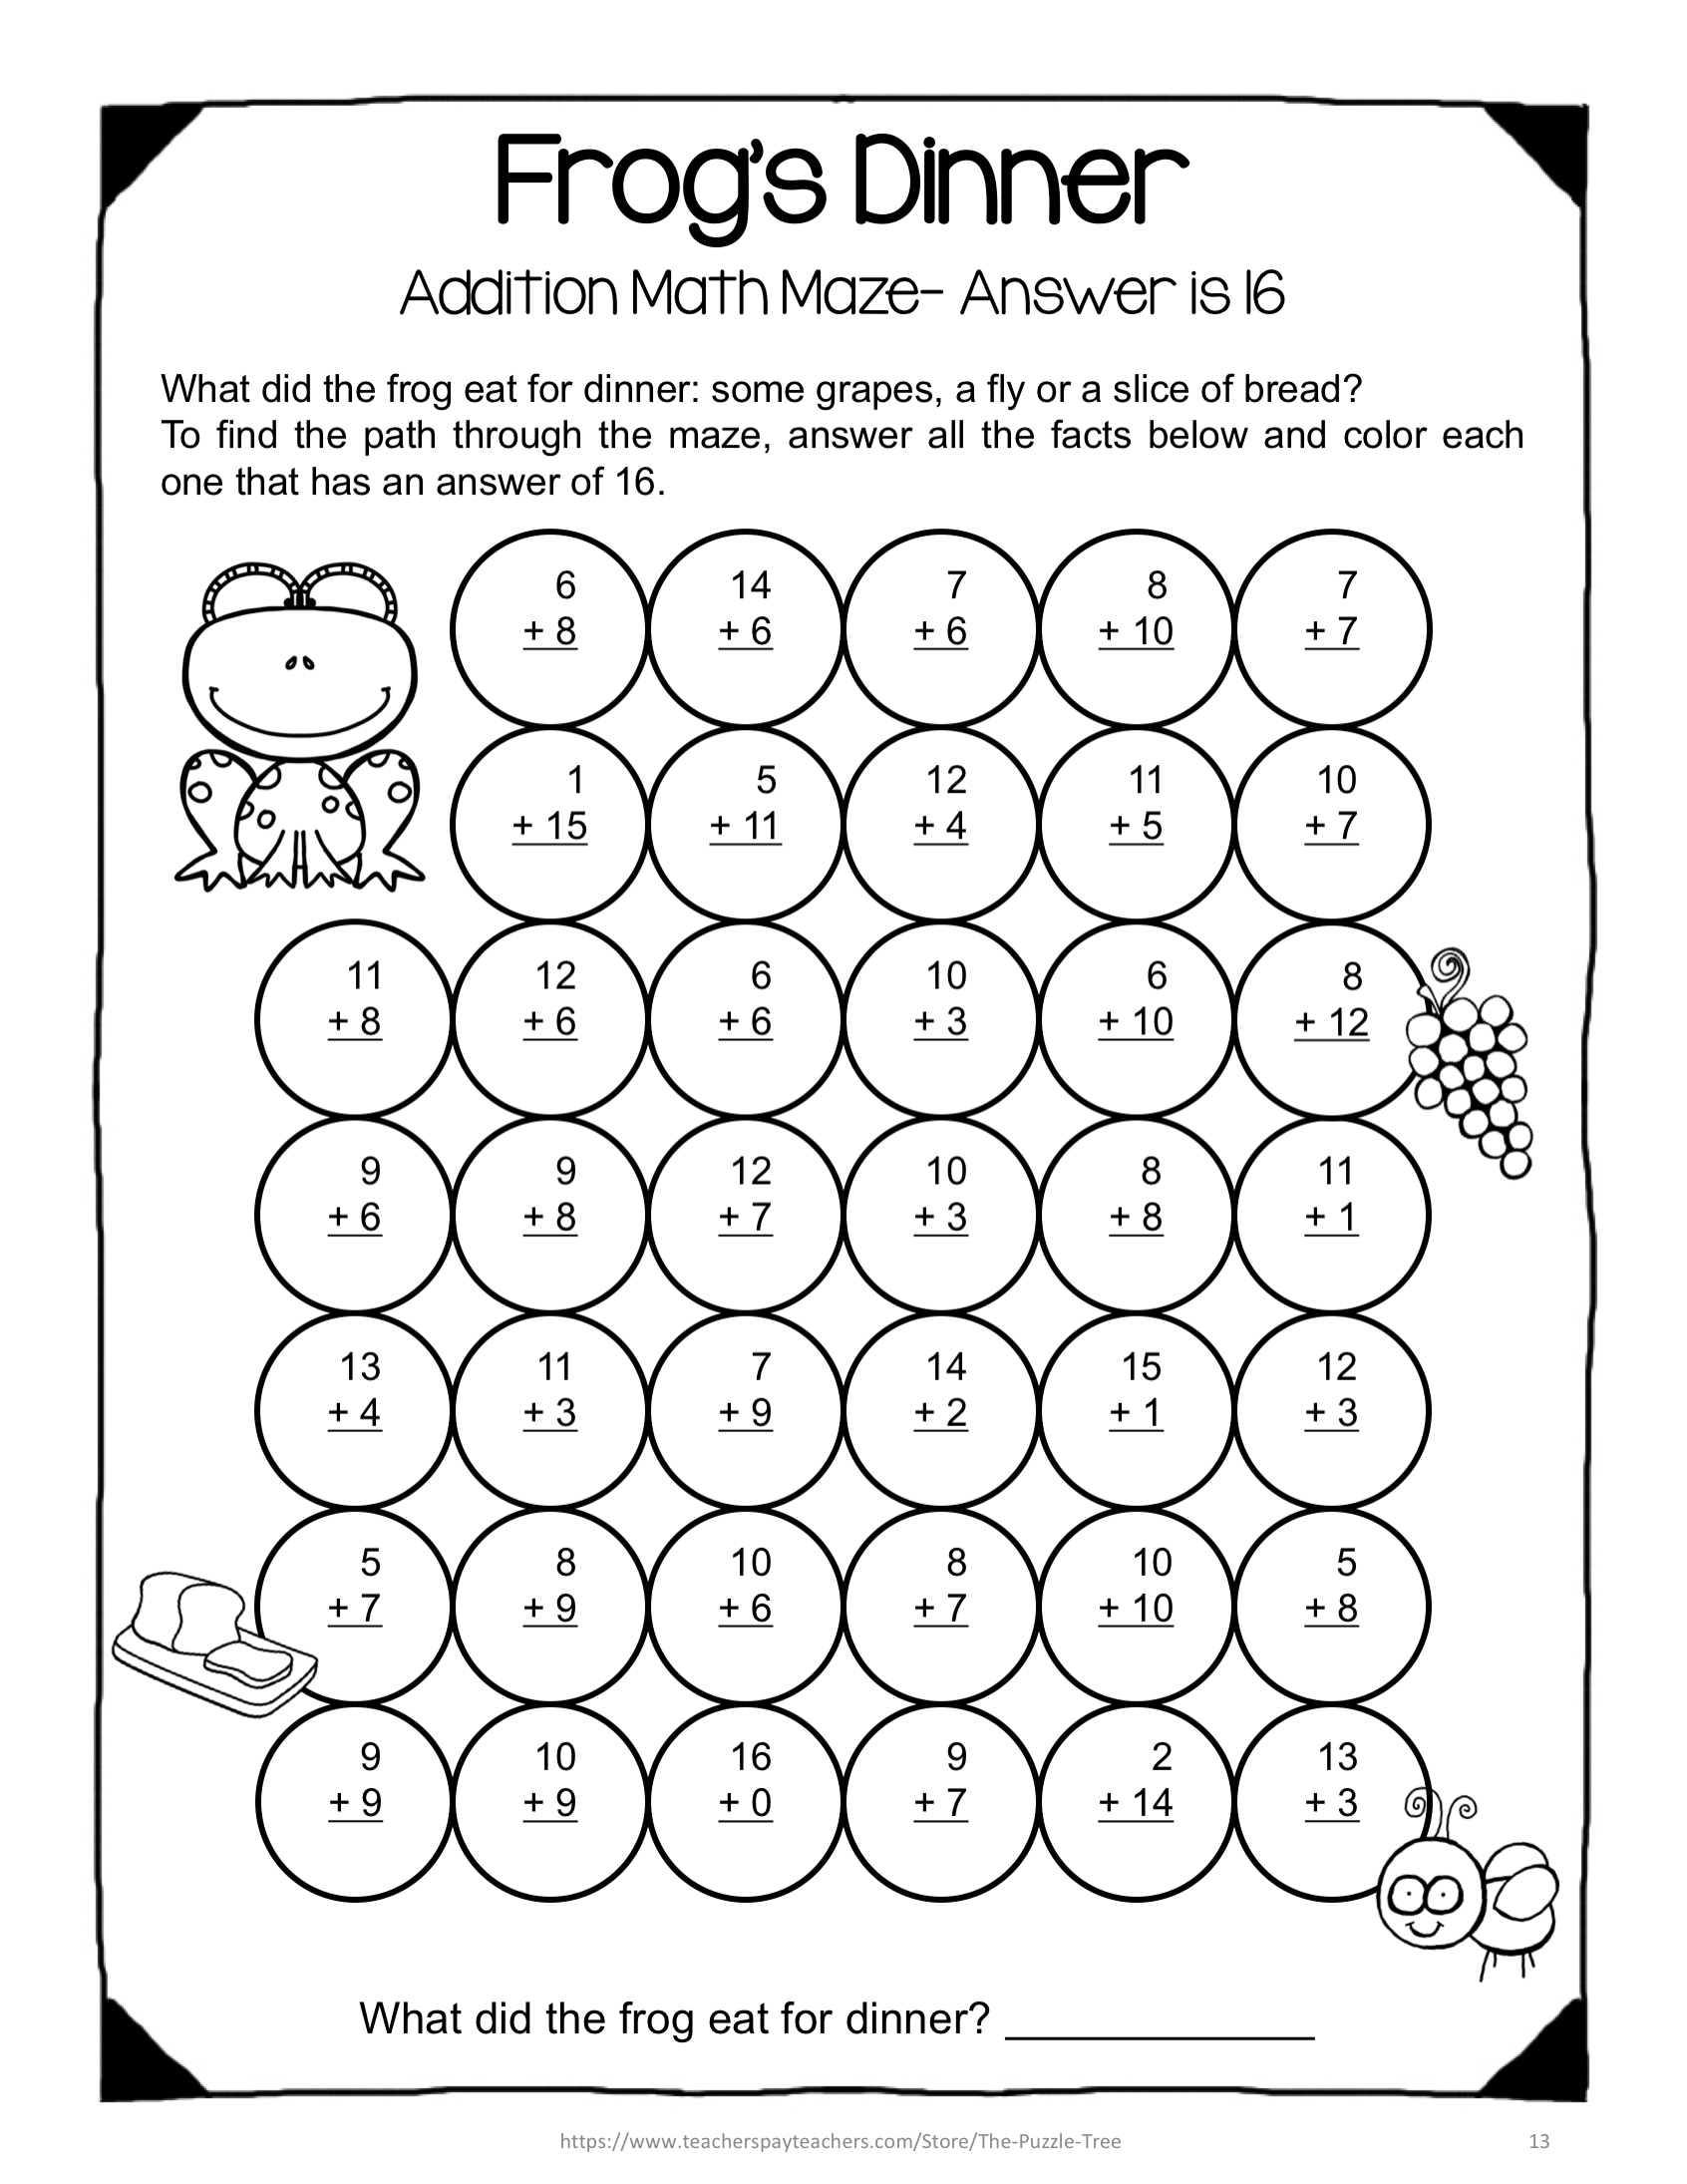 Addition Activities Math Mazes Worksheets For Addition Fact Practice To 20 Math Fact Fluency Math Maze Addition Facts [ 2190 x 1692 Pixel ]